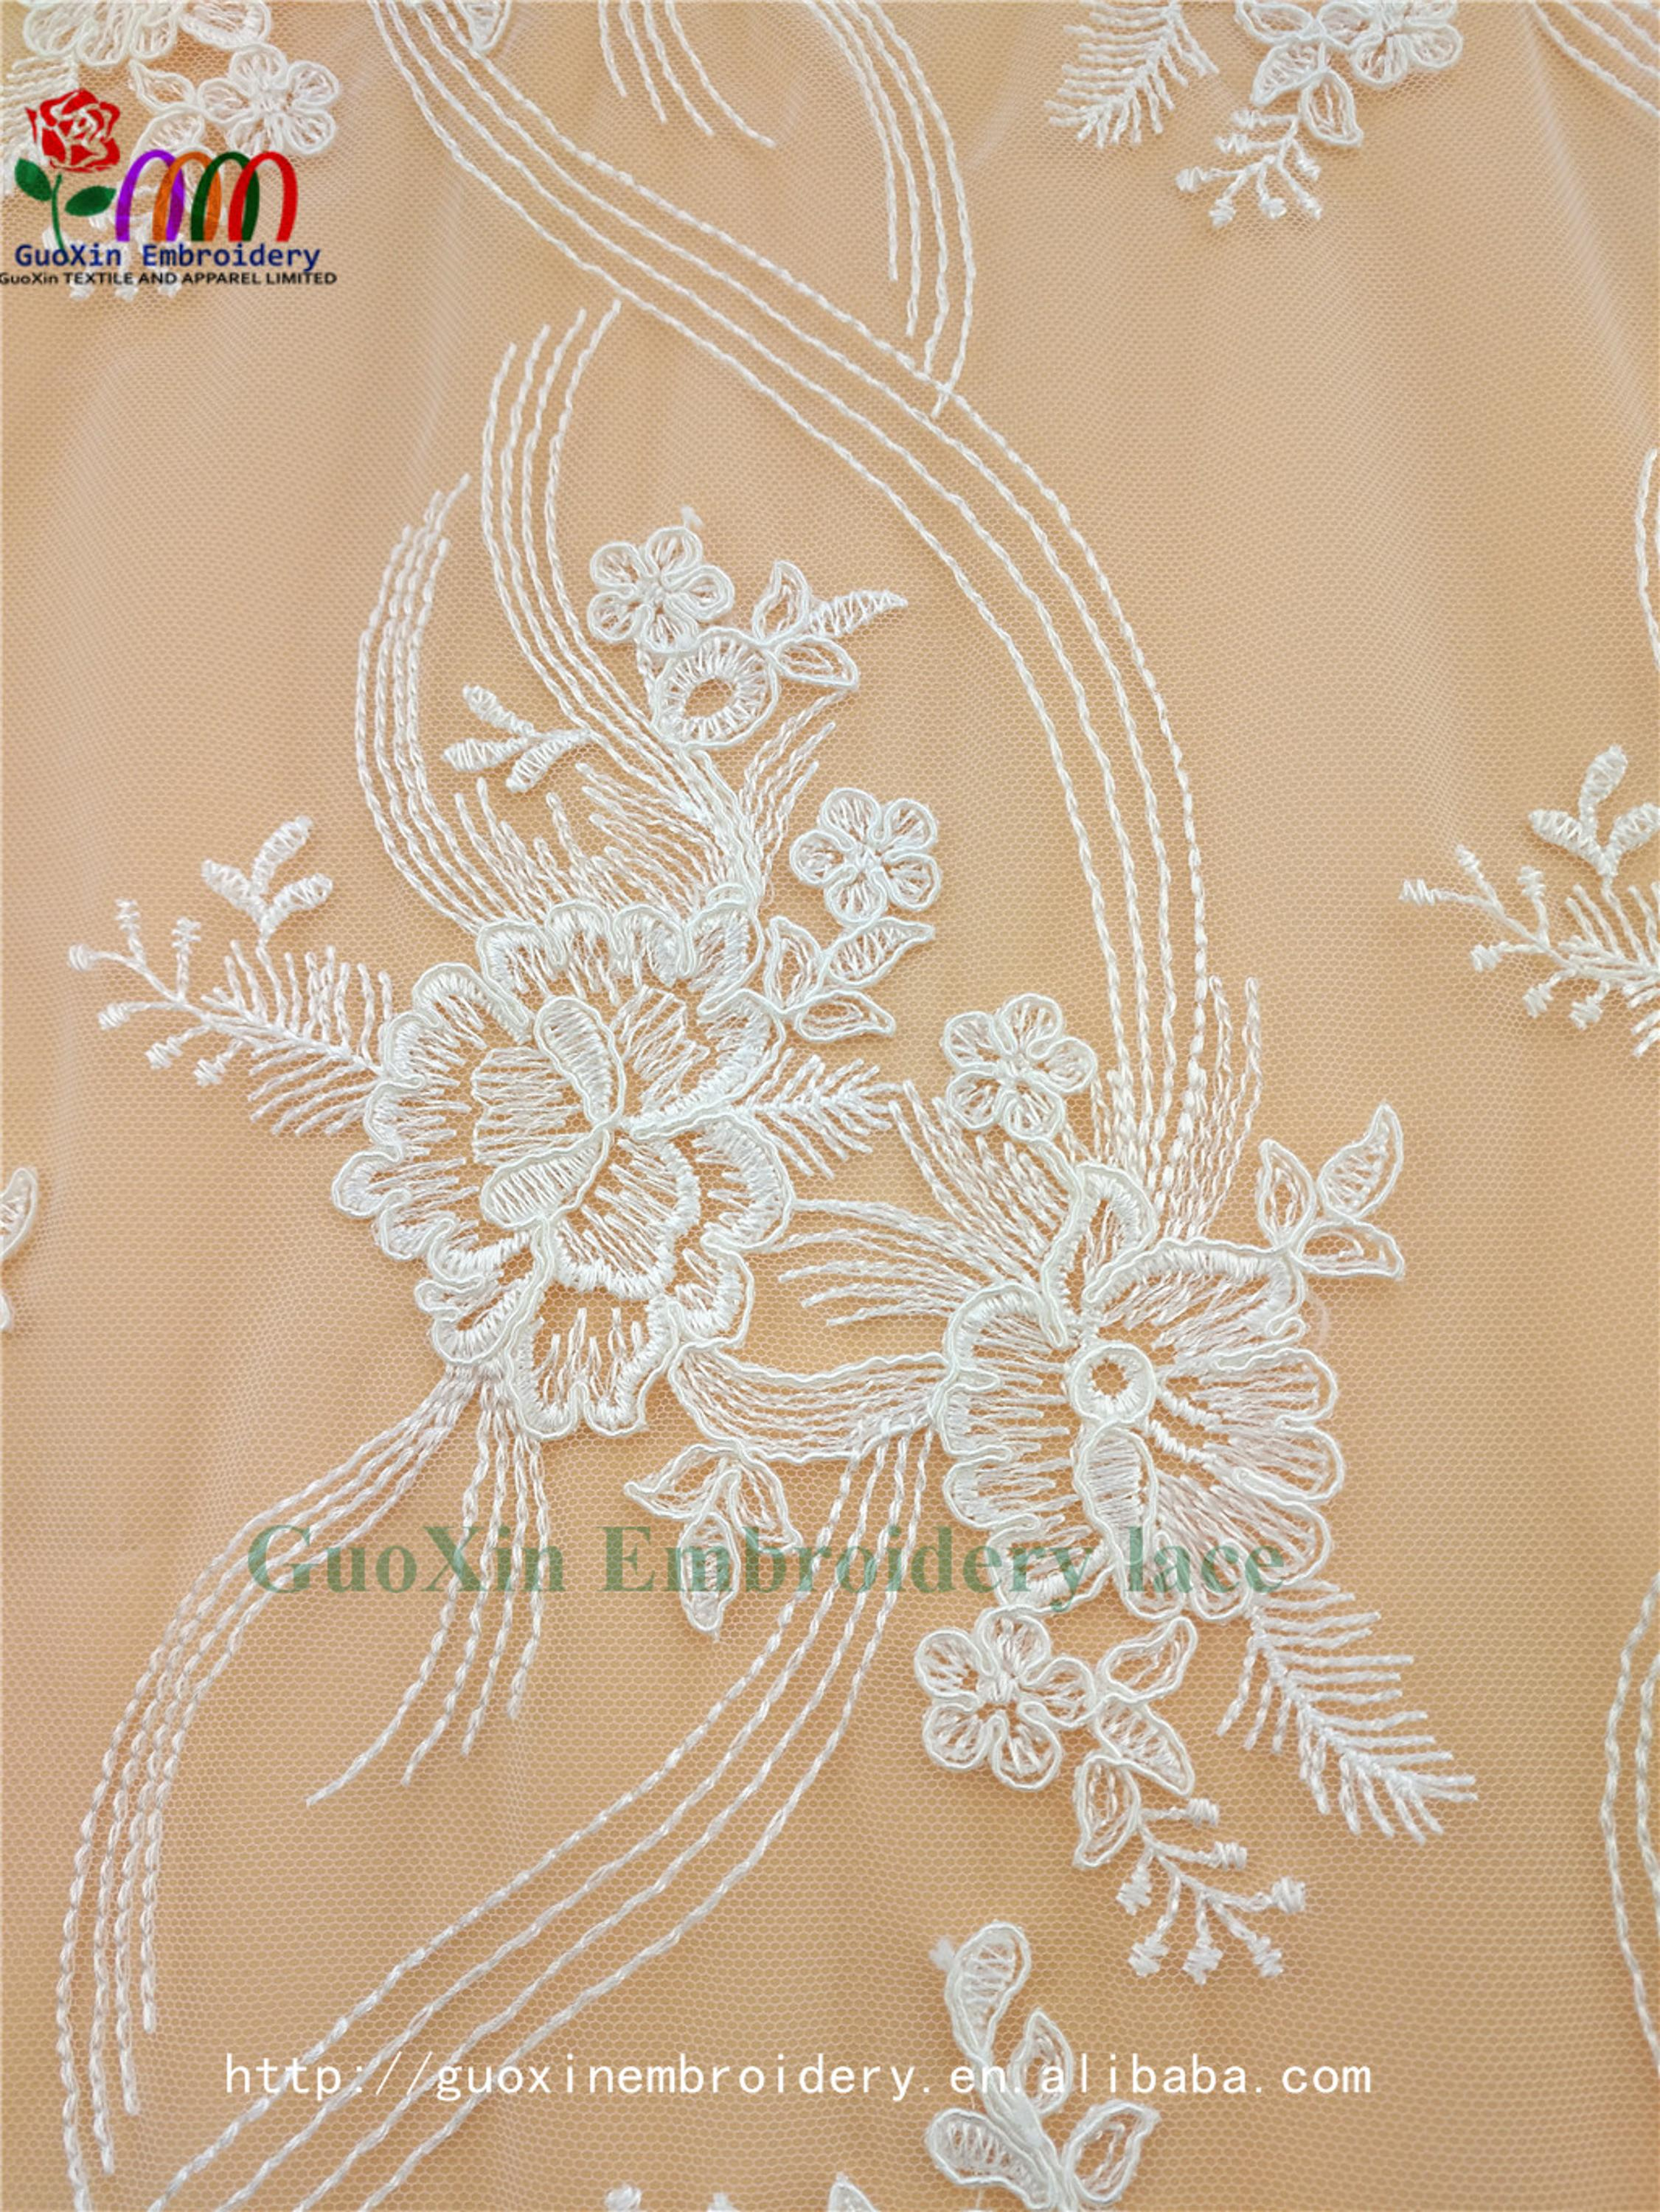 guangzhou guoxin clothing co.,ltd wholesale embroideried lace fabric for dress